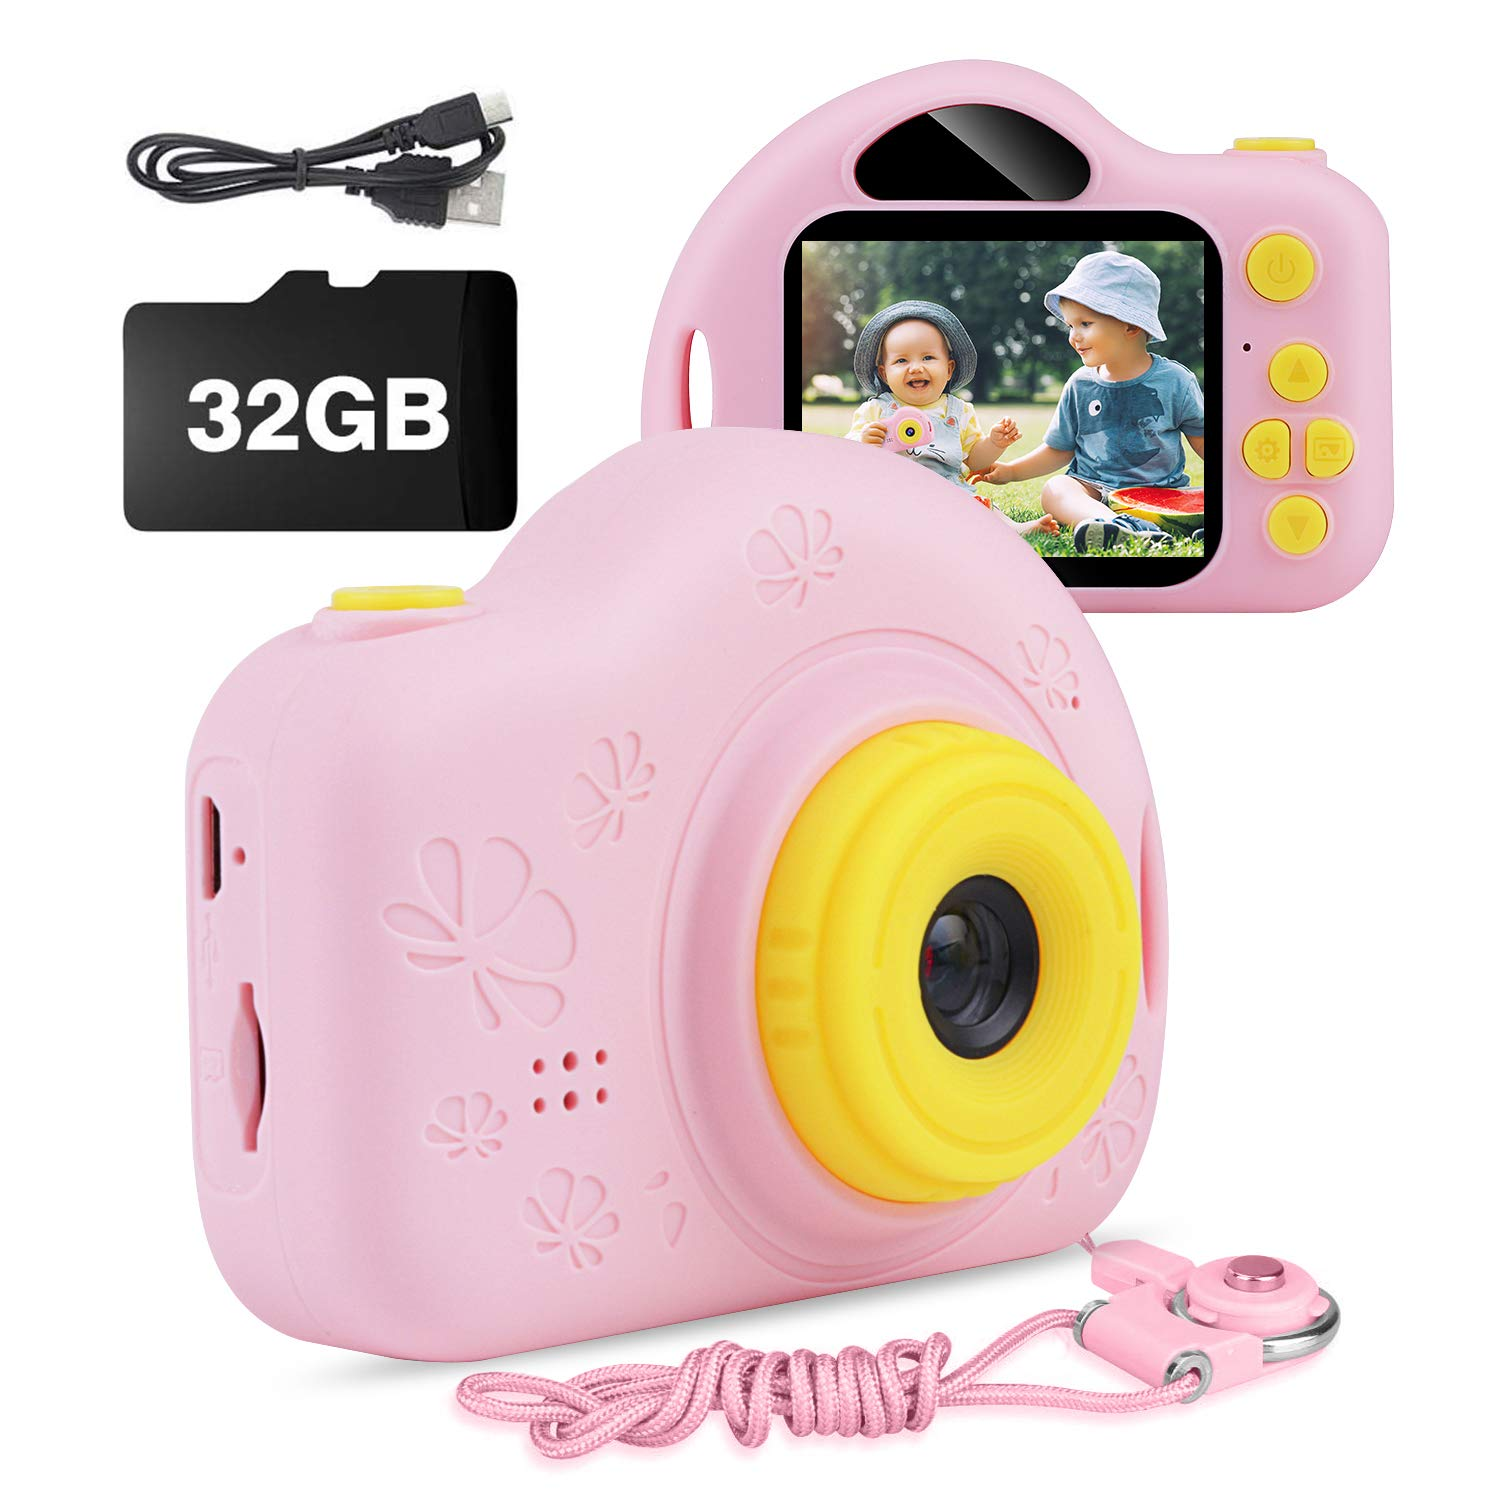 Kids Camera, AIMASON Digital Video Camera Gift for Age 3 4 5 6 7 8 9 10 Year Old Girls, Mini Rechargeable and Shockproof Camera Creative DIY Camcorder for Little Girl with 32GB SD Card (Pink) by AIMASON